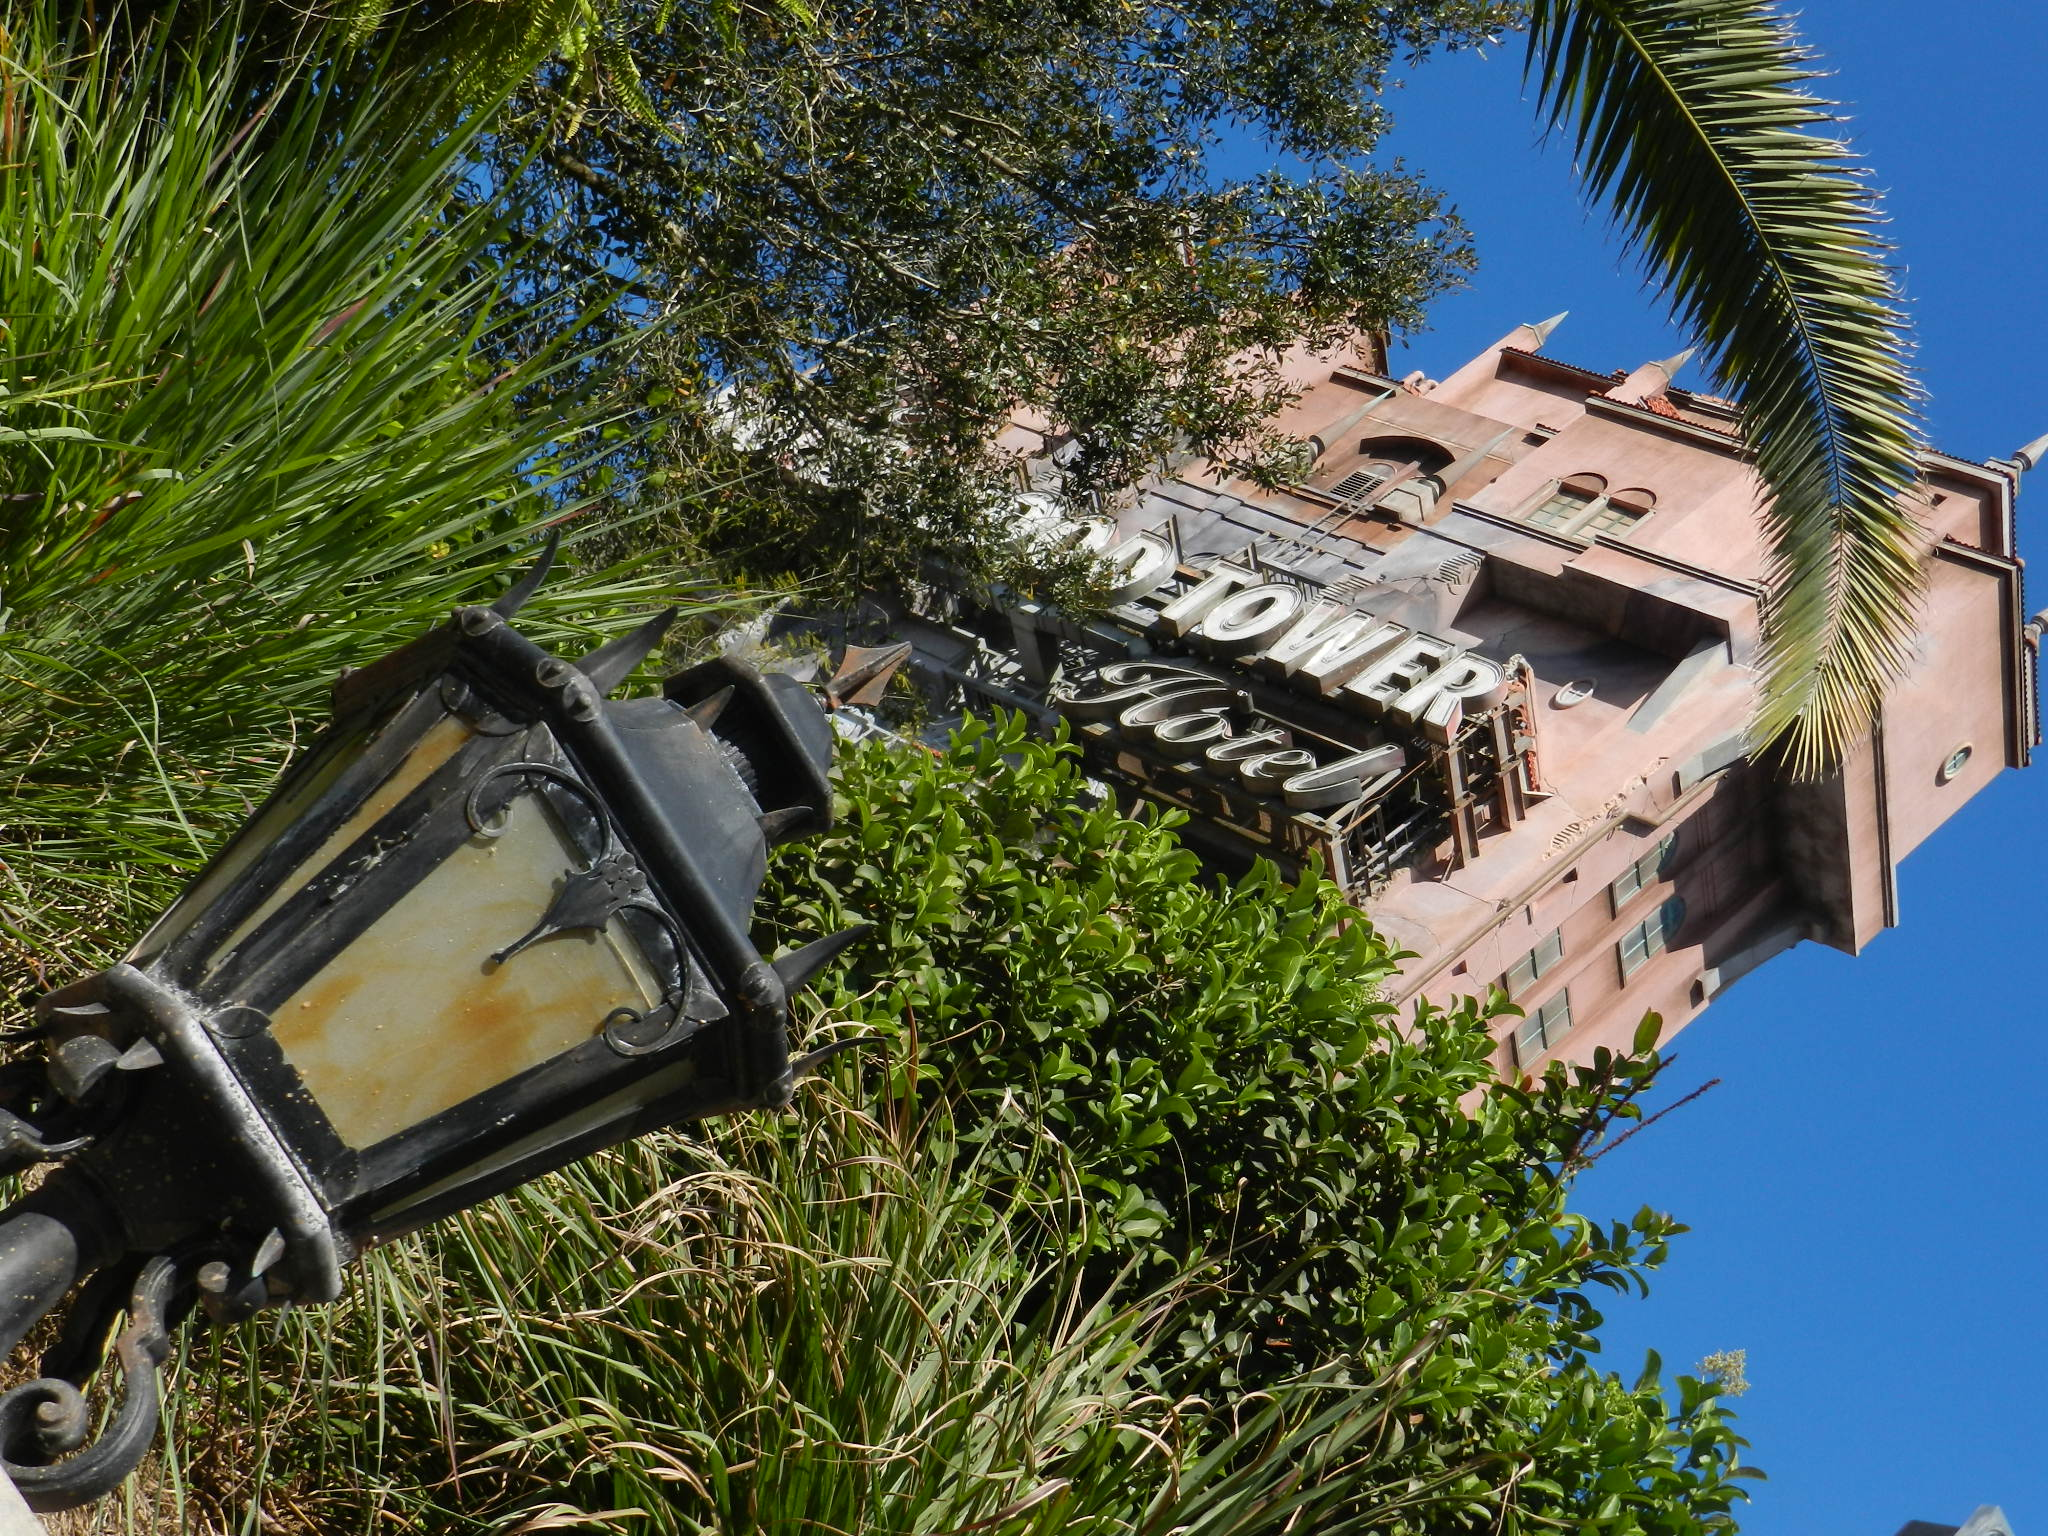 Hollywood Tower of Terror Ride at Disney's Hollywood Studios looking eerie